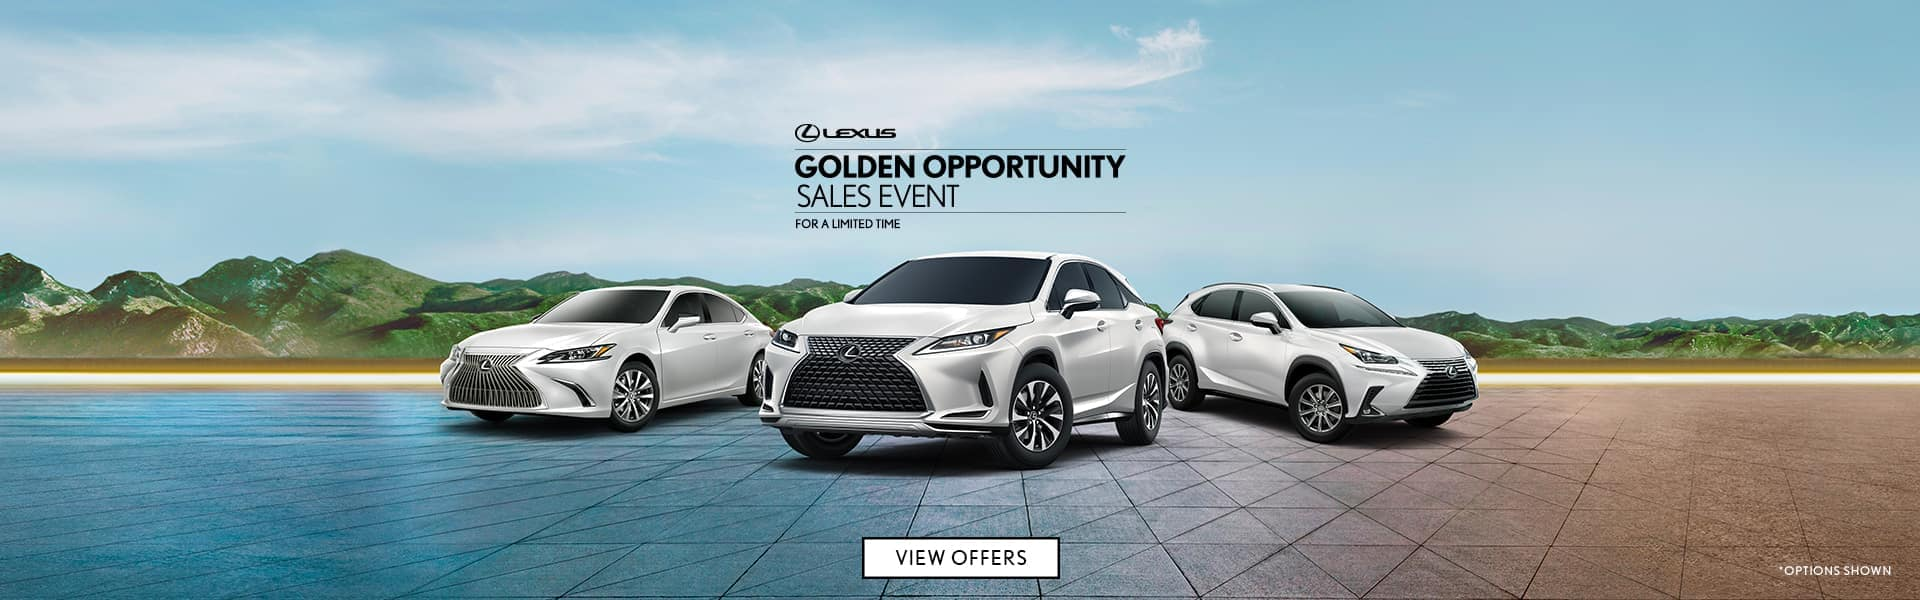 Golden Opportunity Sales Event Lexus Of Route 10